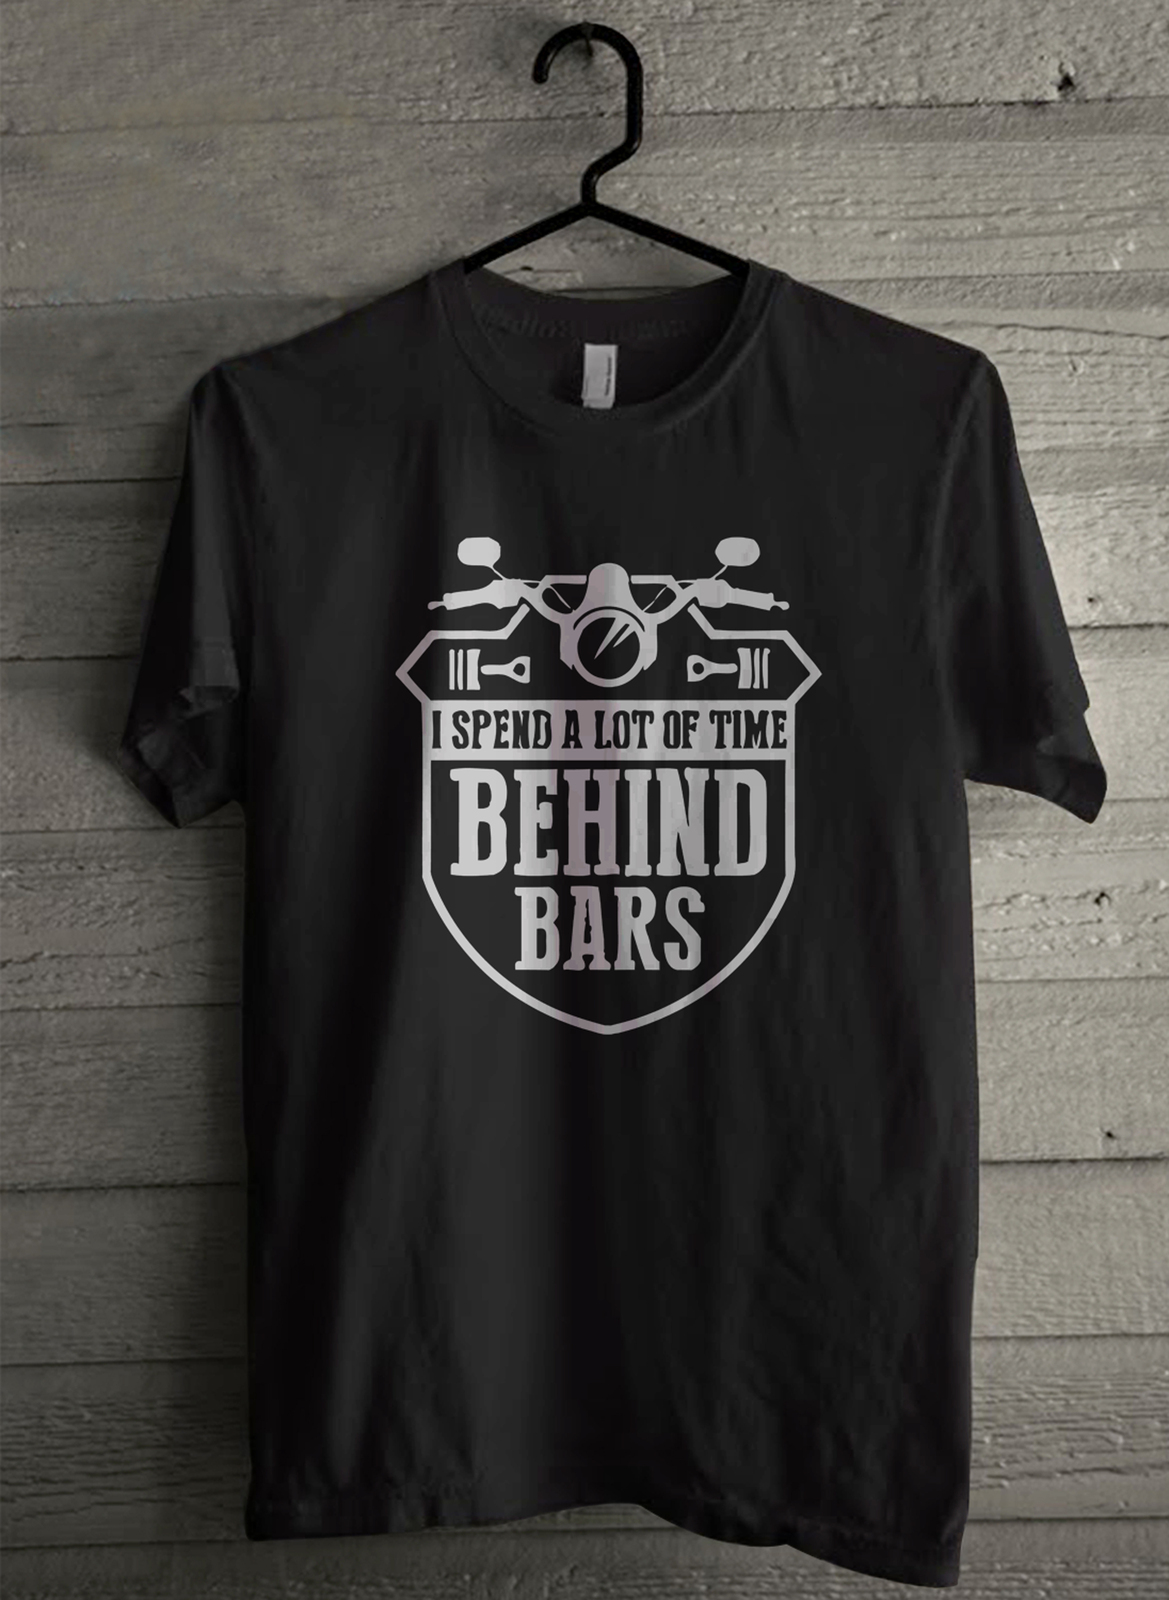 I spend a lot of time behind bars - Custom Men's T-Shirt (4146)